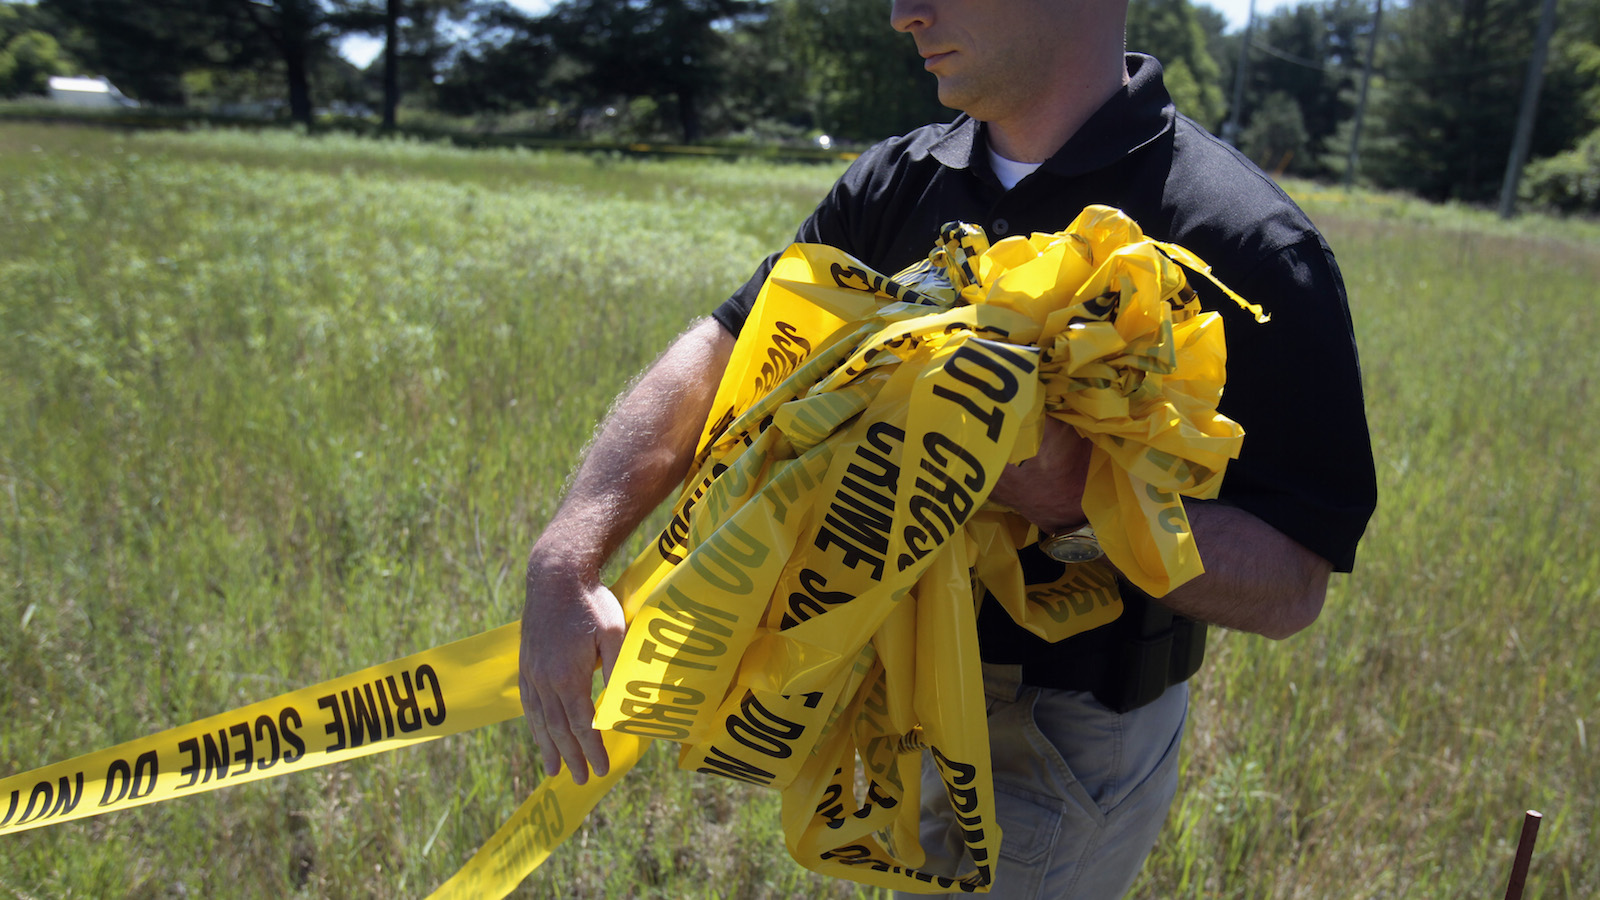 A federal investigator carries yellow crime tape at a field which investigators are prepared to dig up for the remains of former Teamsters boss Jimmy Hoffa in Oakland Township, Michigan June 17, 2013. The latest search for Hoffa, who disappeared in 1975 in what law enforcement officials believe might have been an organized crime hit, brought investigators on Monday to an overgrown vacant field in suburban Detroit.    REUTERS/ Rebecca Cook  (UNITED STATES - Tags: CRIME LAW) - RTX10R55